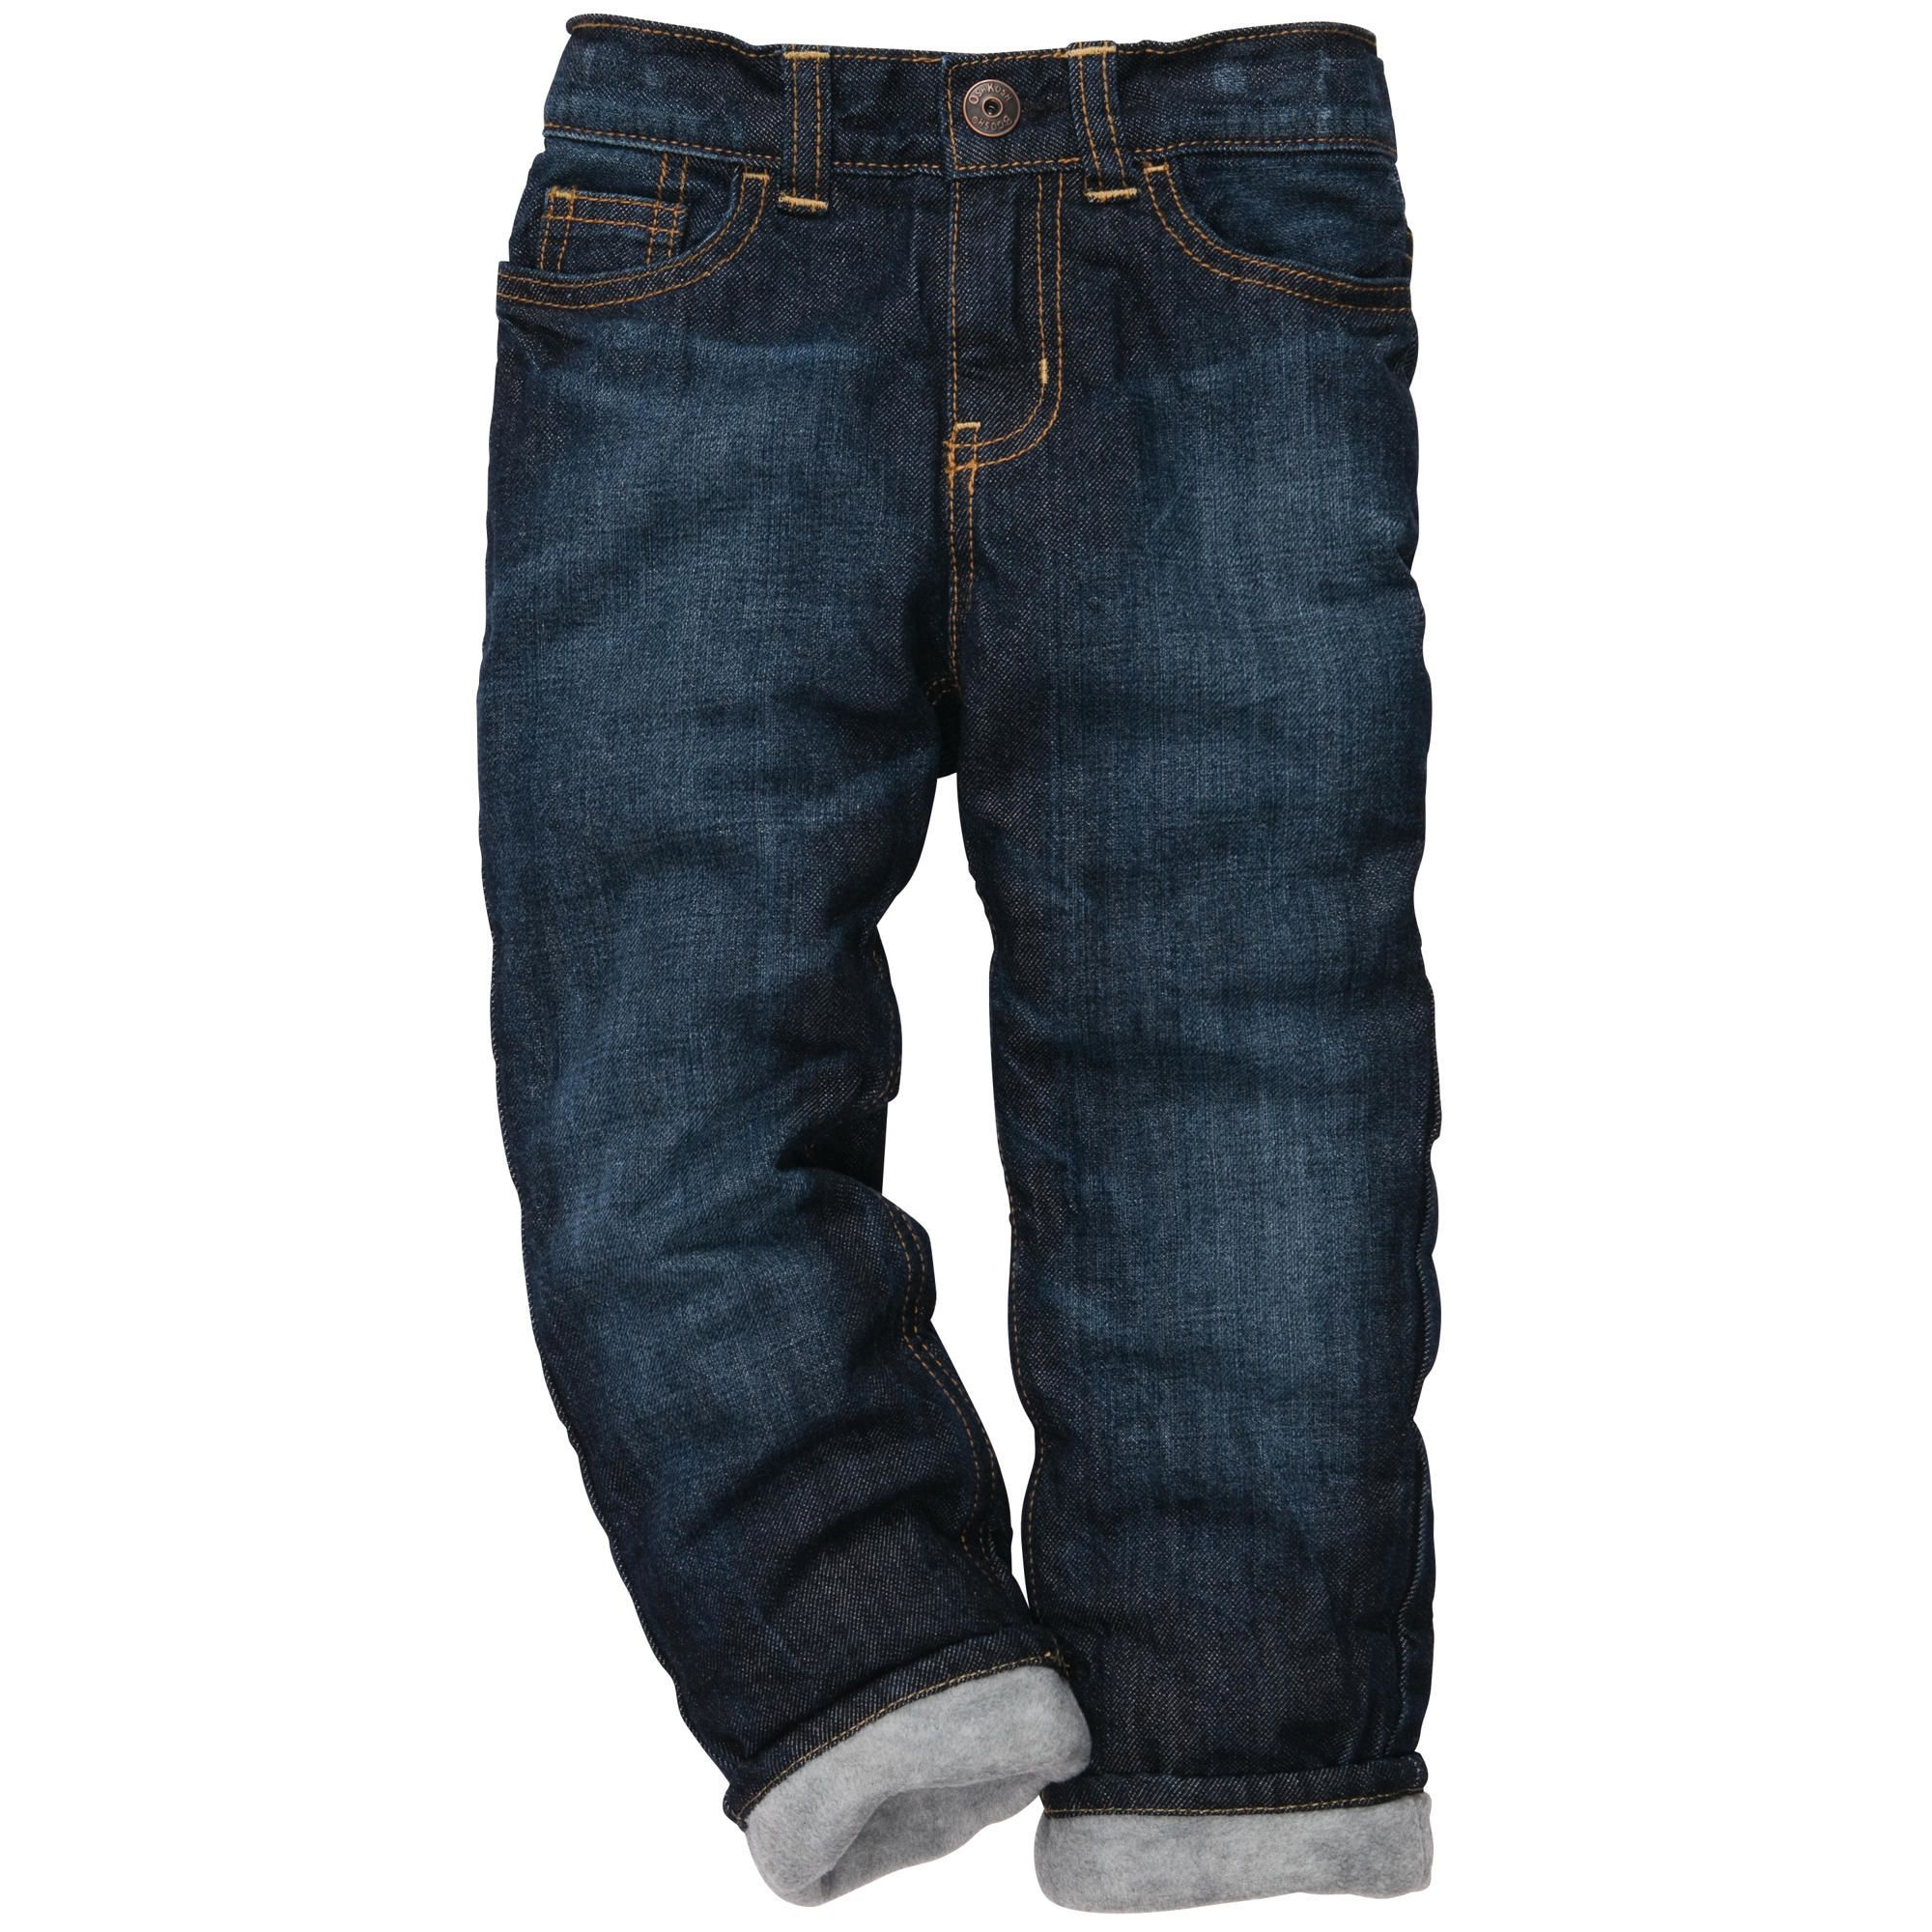 Fleecelined denim carters ordering pinterest kids